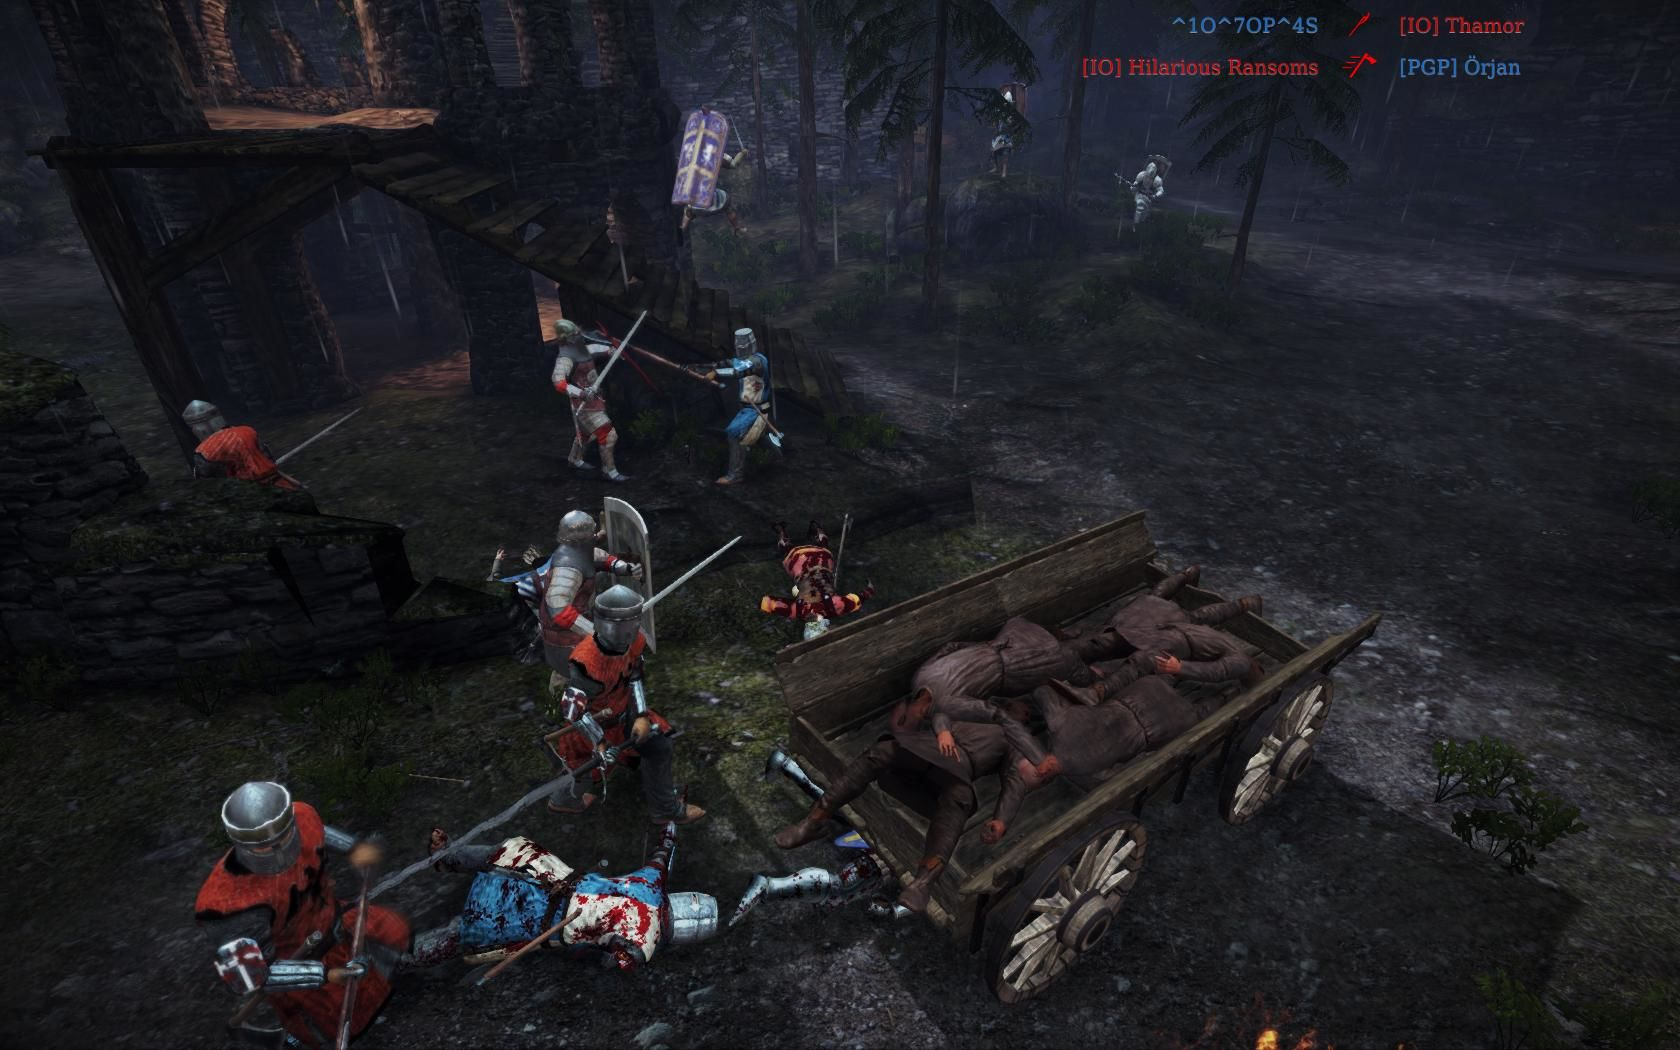 Chivalry: Medieval Warfare Screenshots for Windows - MobyGames